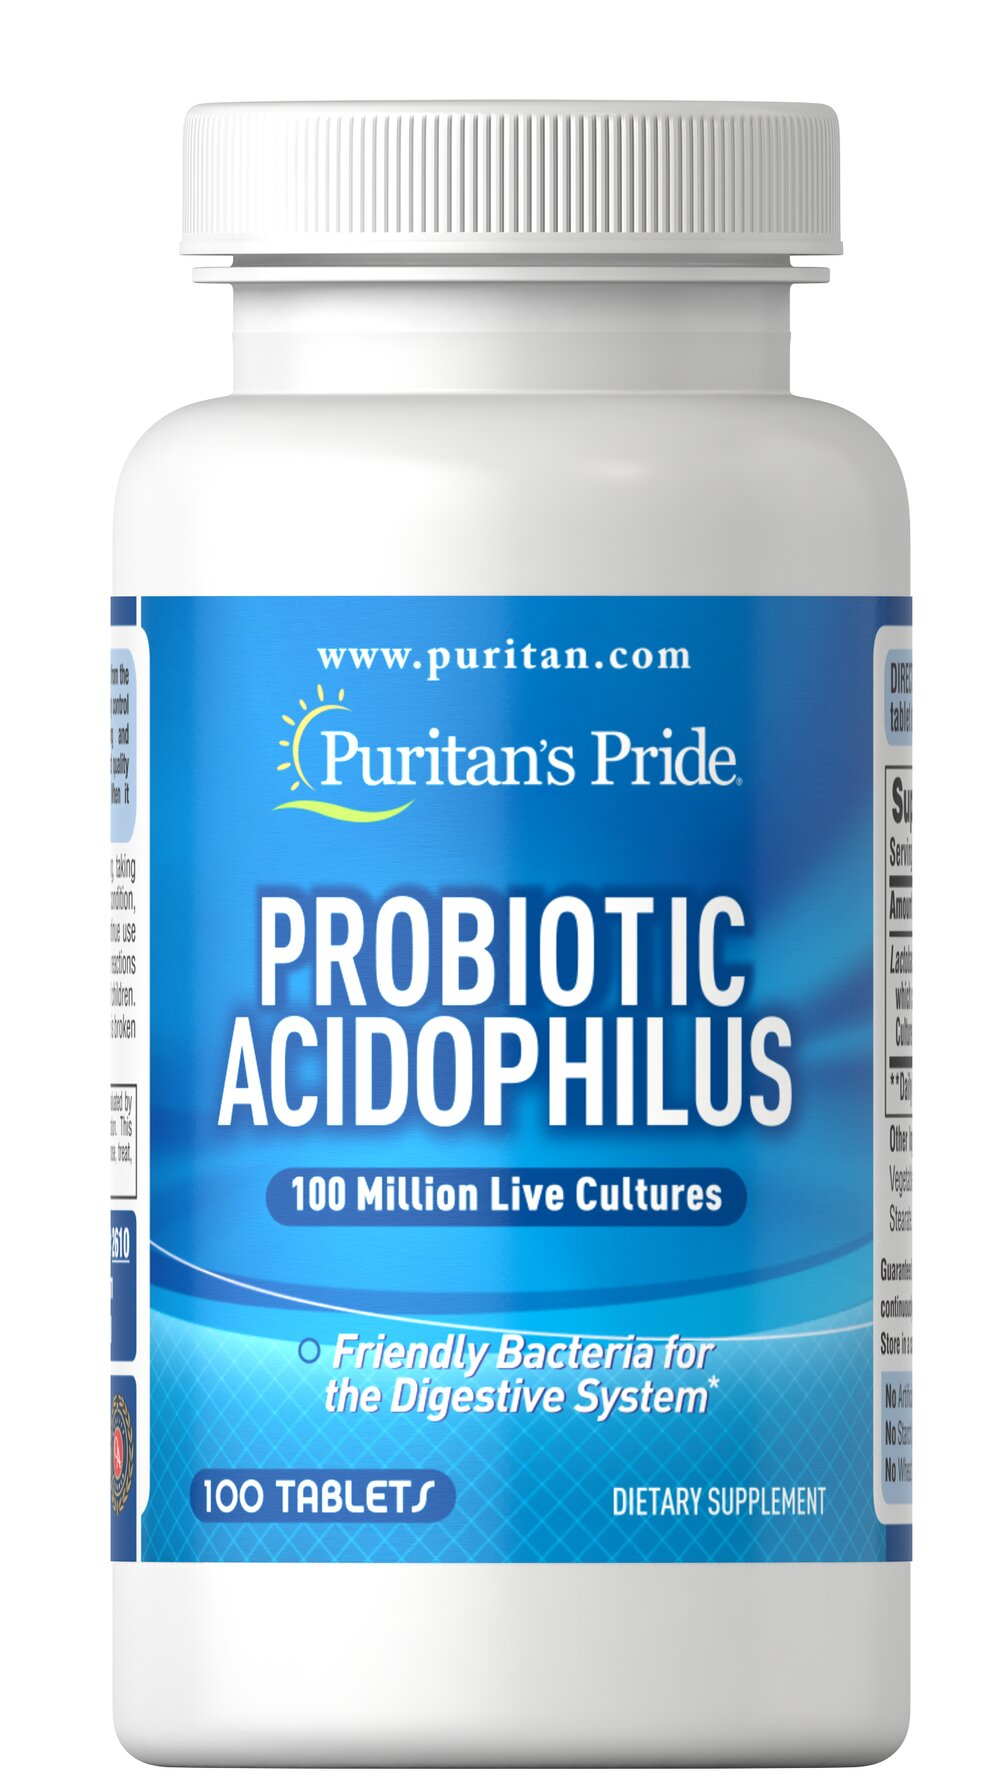 Probiotic Acidophilus <p>Acidophilus is a friendly bacteria for digestive system and supports overall well-being.  ** Our Probiotic Acidophilus contains over 100 million active Lactobacillus Acidophilus (including the naturally occurring metabolic product produced by Lactobacilli) at the time of manufacture.</p> 100 Capsules  $7.46